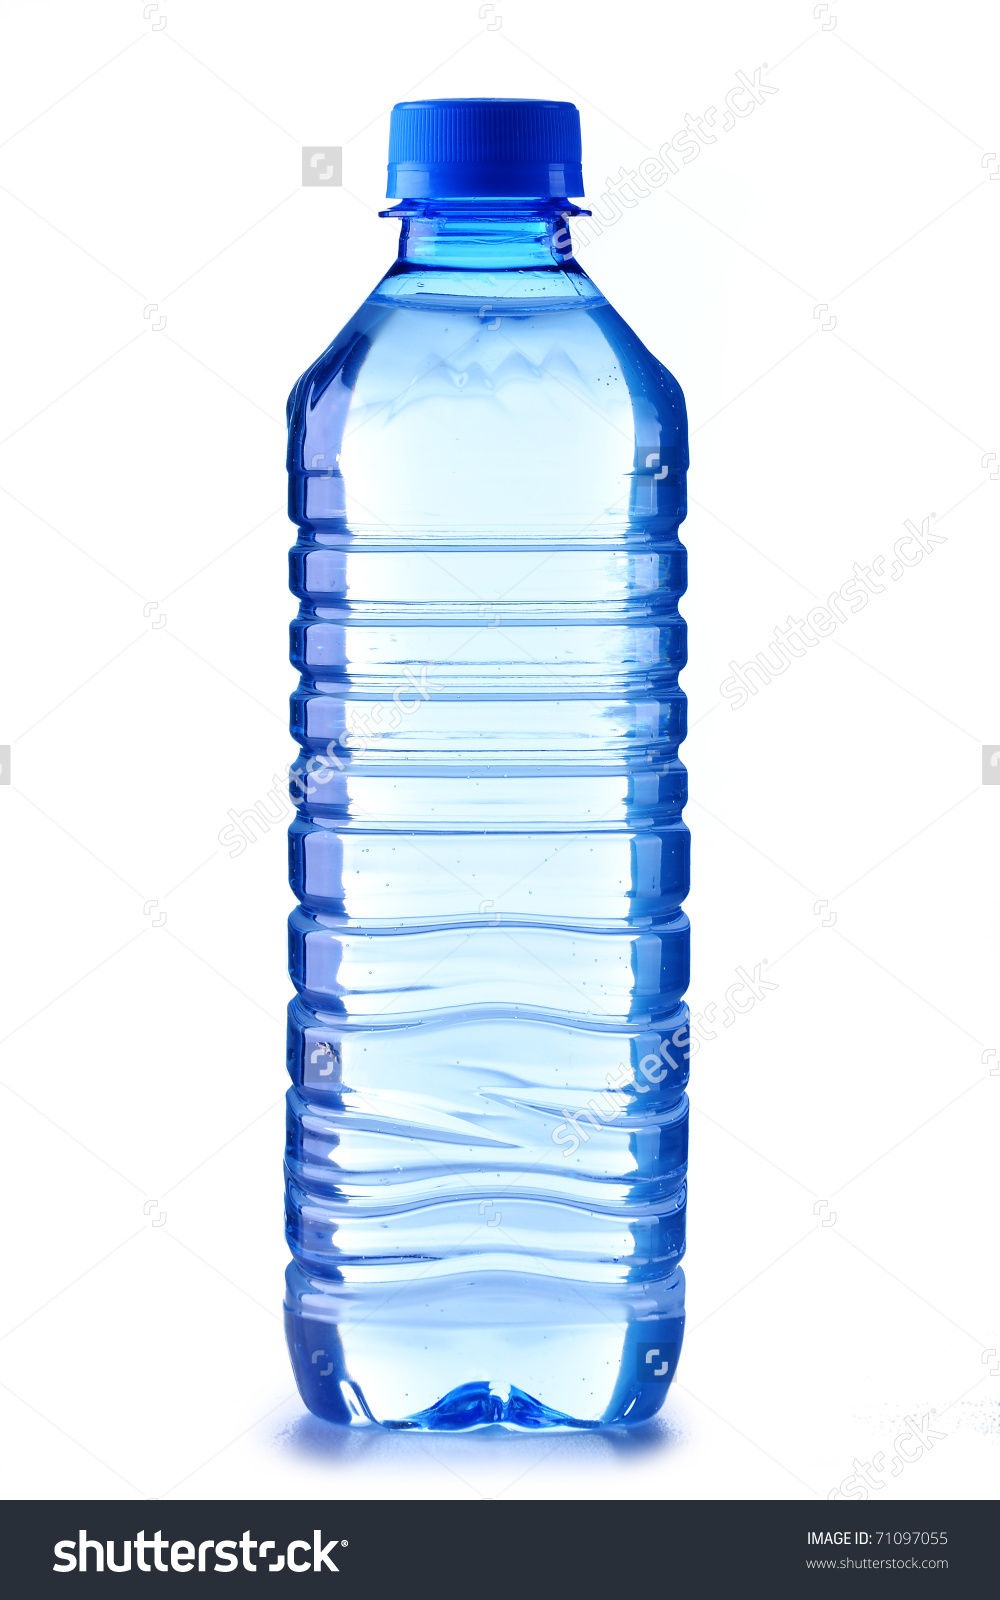 Bottled Water Bottle Clipart